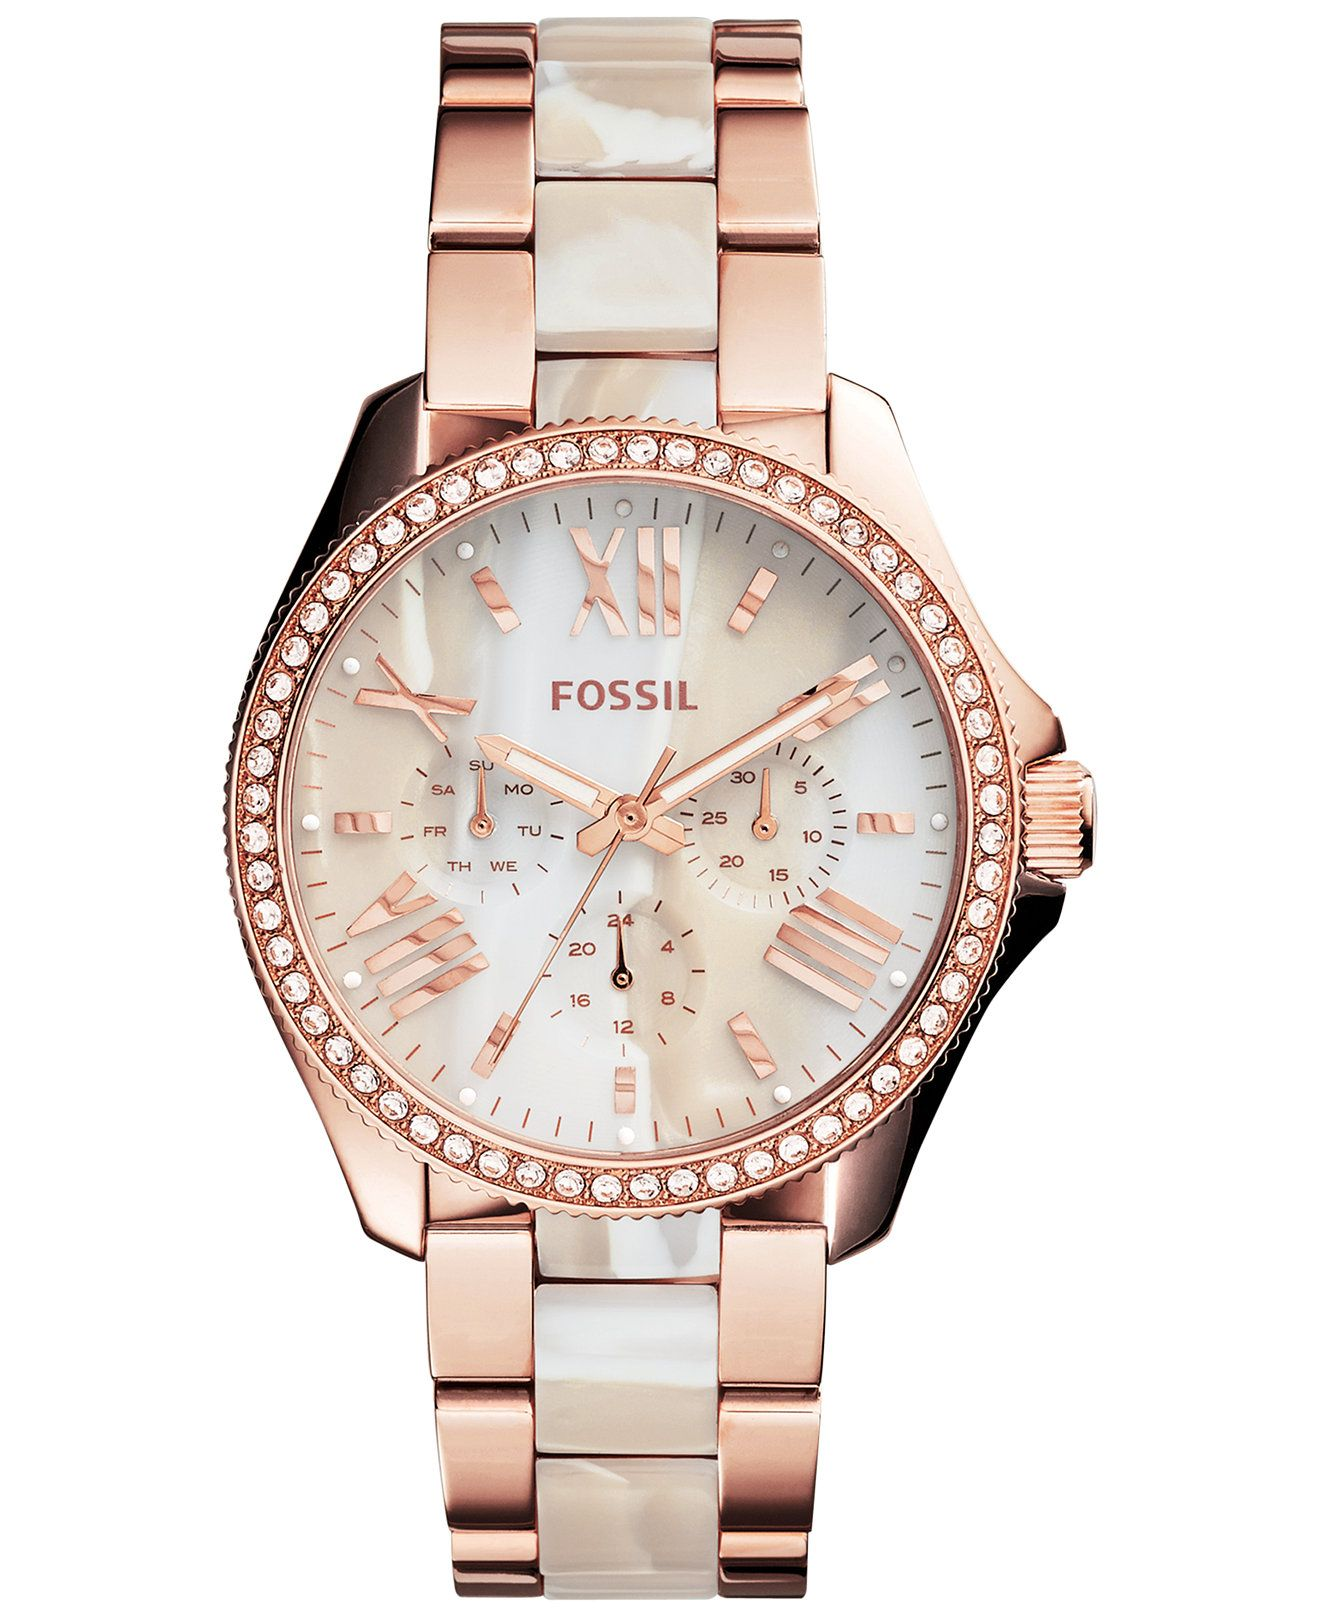 a4ff2c5e141d Fossil Women's Chronograph Cecile Shimmer Horn and Rose Gold-Tone Stainless  Steel Bracelet Watch 40mm AM4616 - Watches - Jewelry & Watches - Macy's